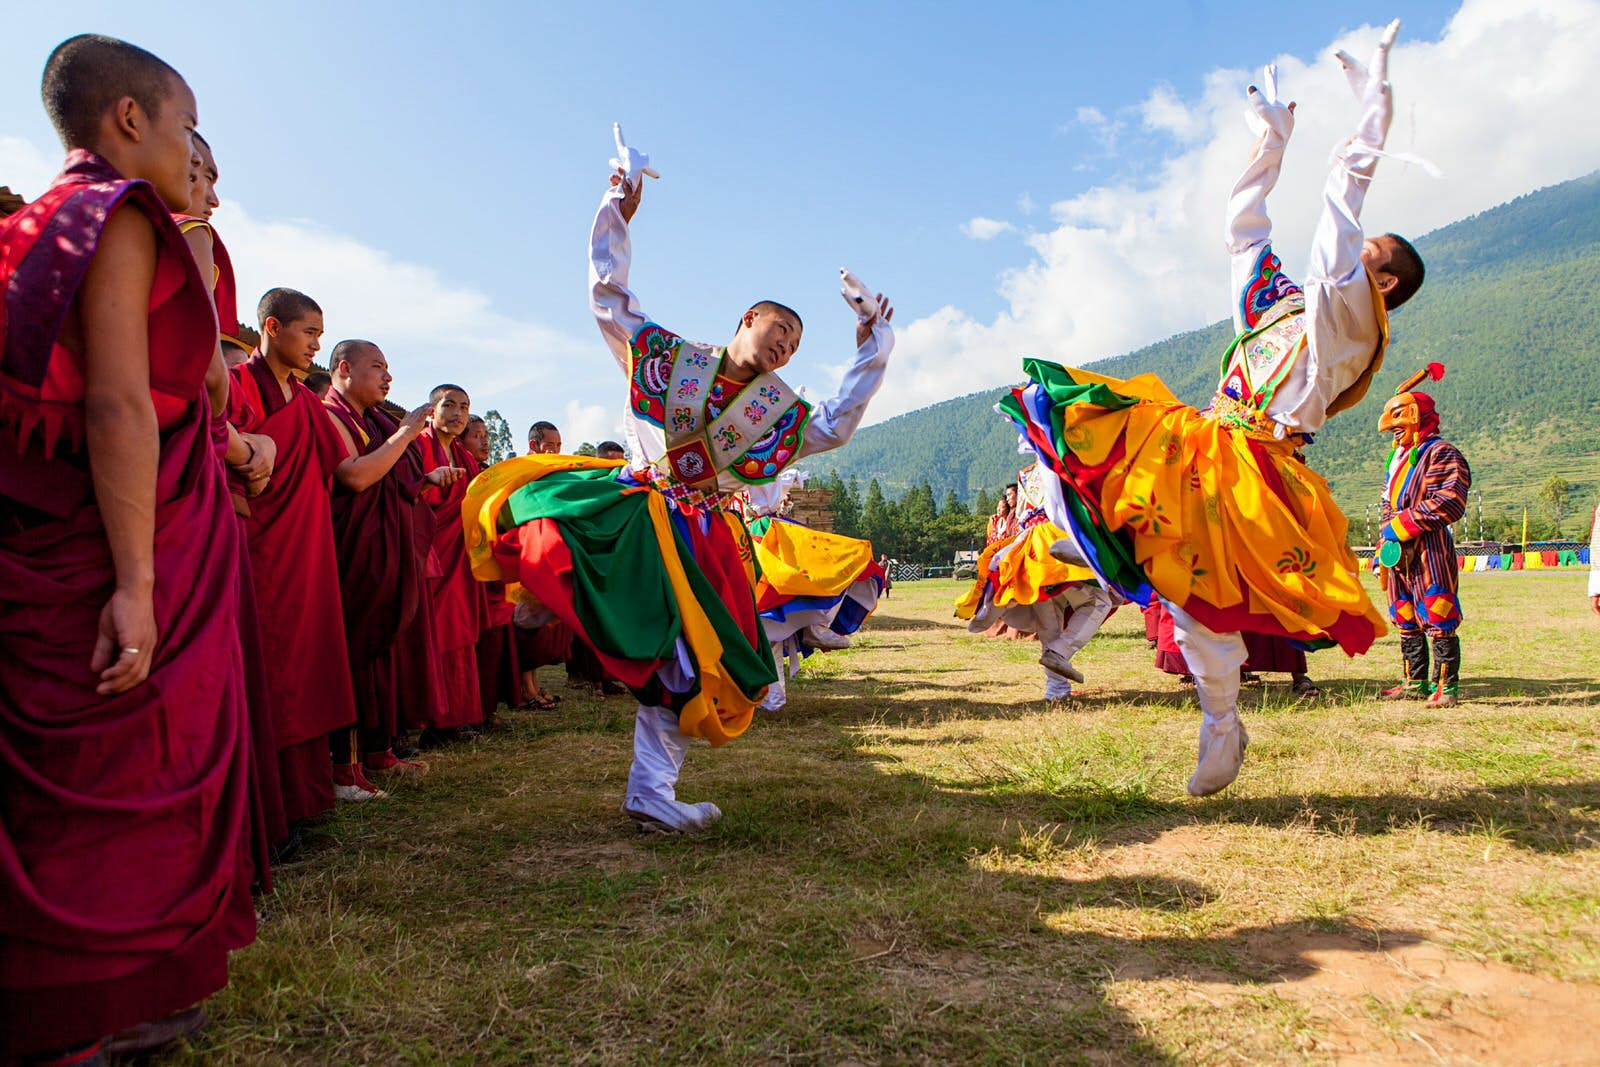 Monks in red robes line up on the left side watching men in colourful suits leap in the air as part of the dance.